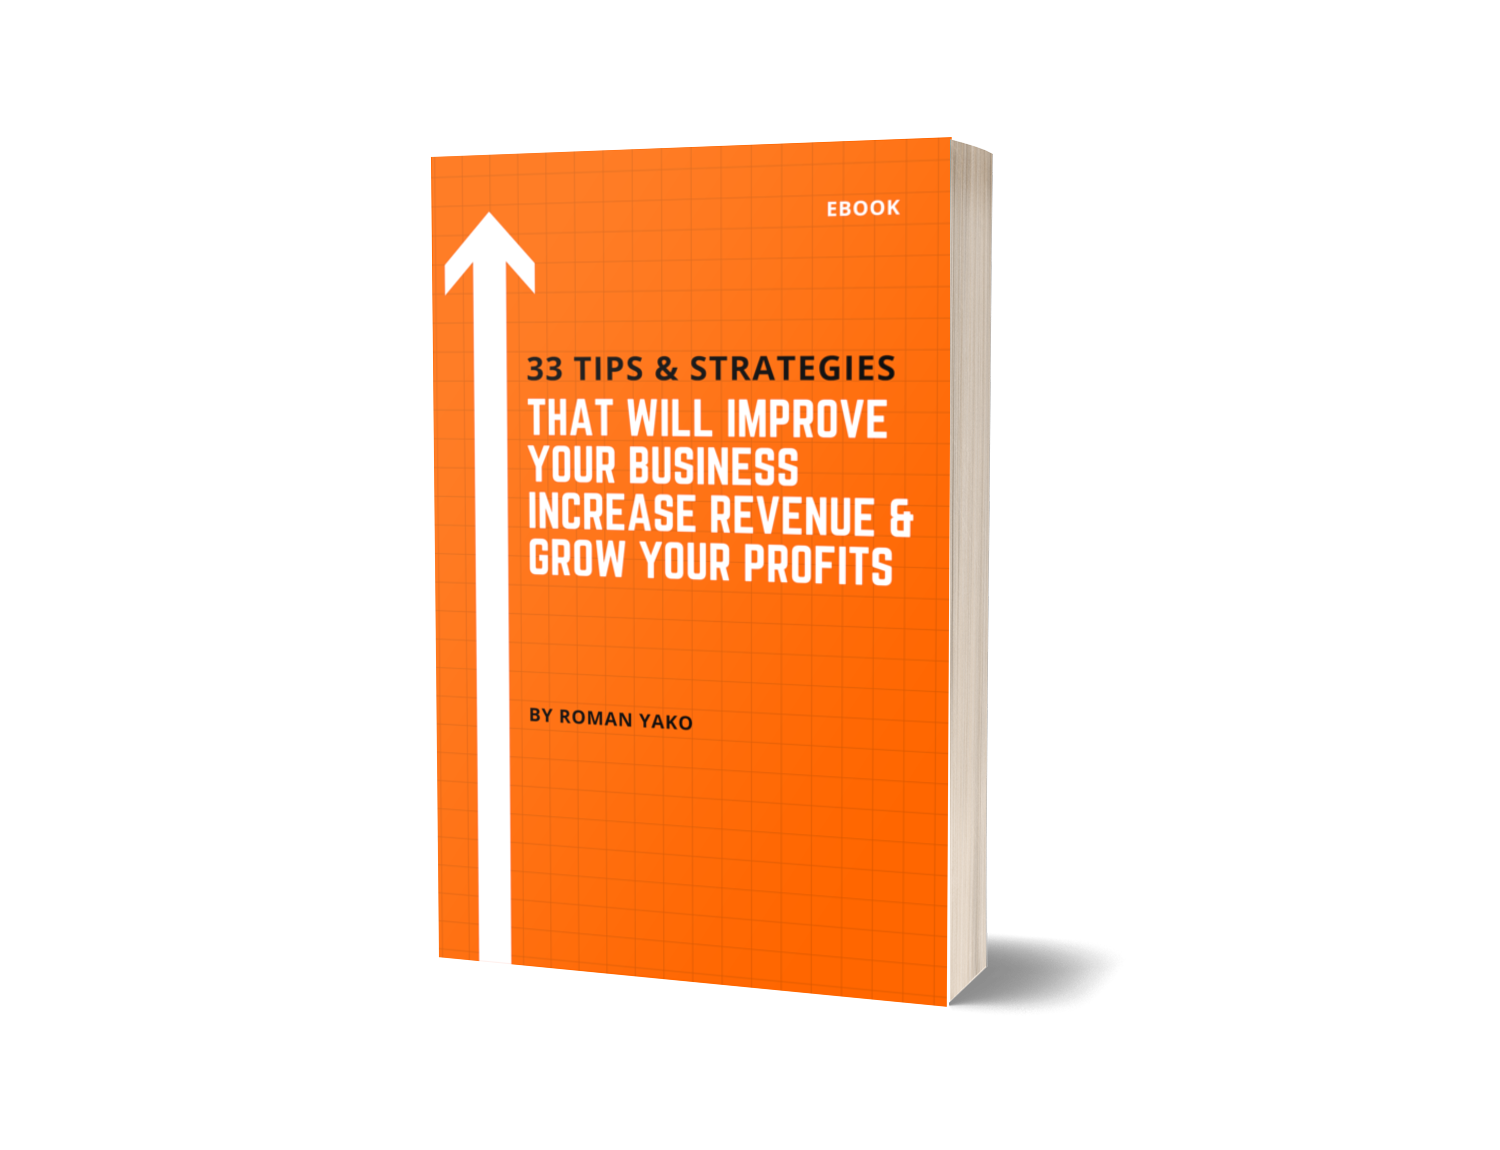 33 Tips & Strategies That Will Improve Your Business, Increase Revenue, and Grow Your Profits